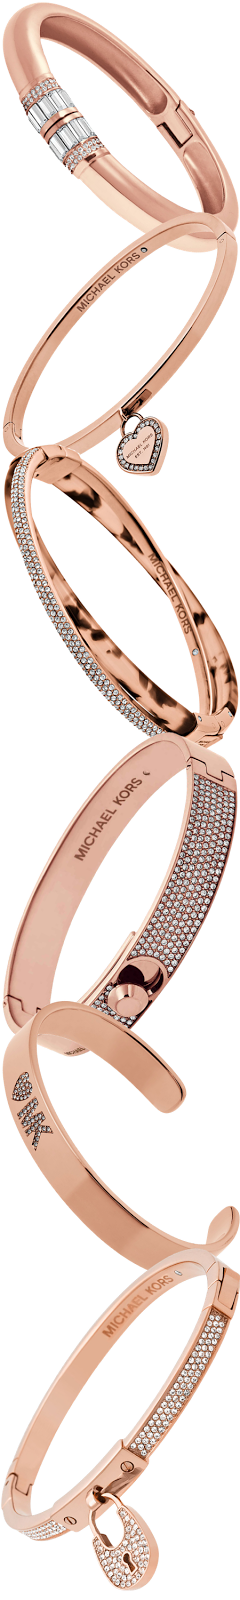 Michael Kors Assorted Rose Gold Bangles